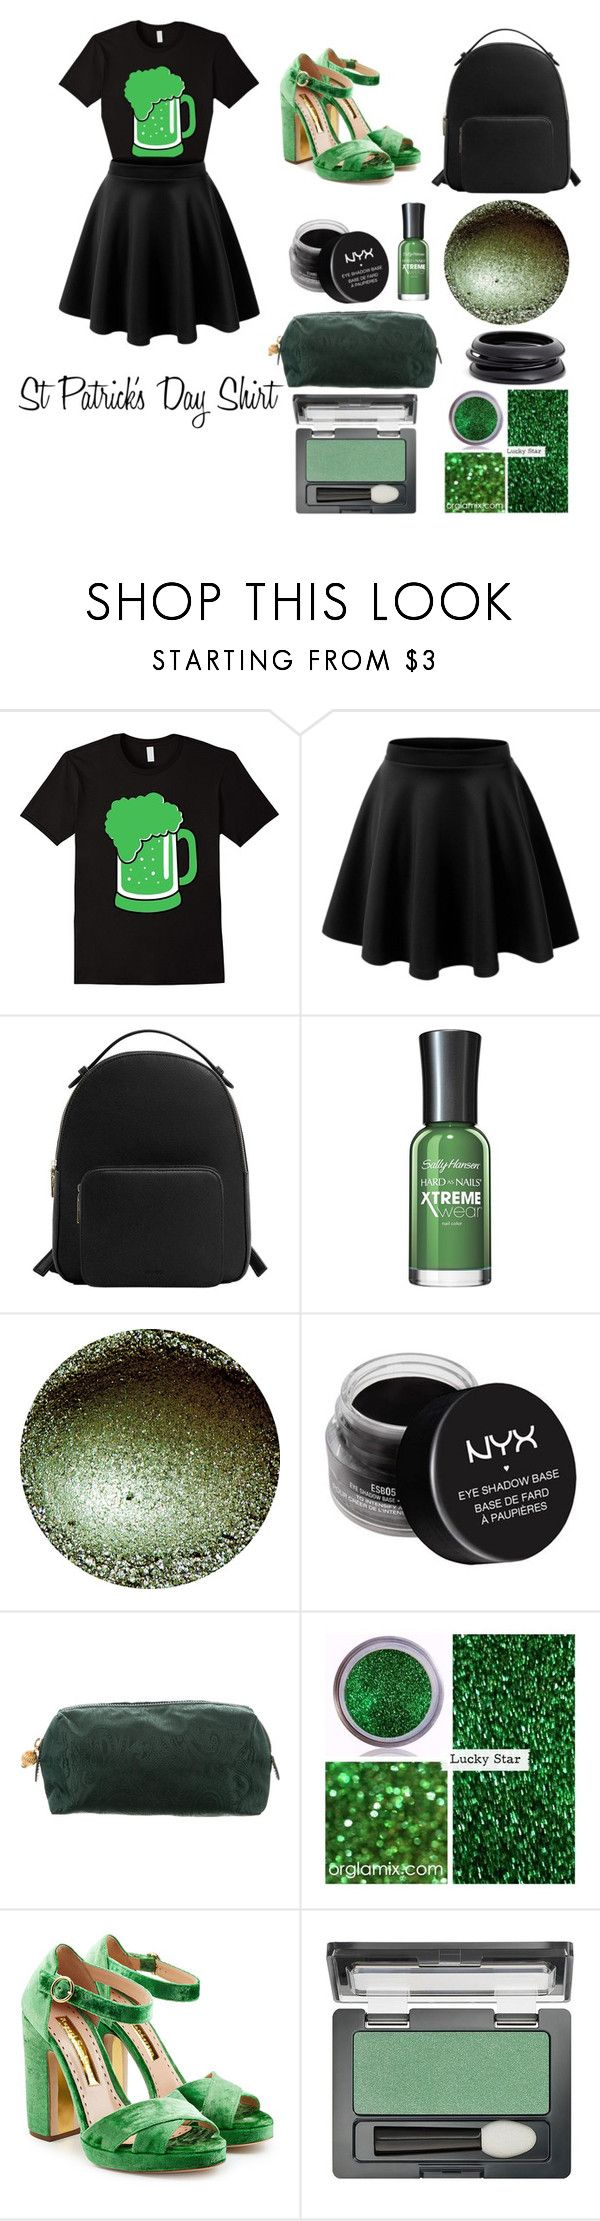 """""""St Patrick's Day Shirt"""" by beldisegno ❤ liked on Polyvore featuring MANGO, NYX, Etro, Rupert Sanderson, Maybelline and ZENZii"""